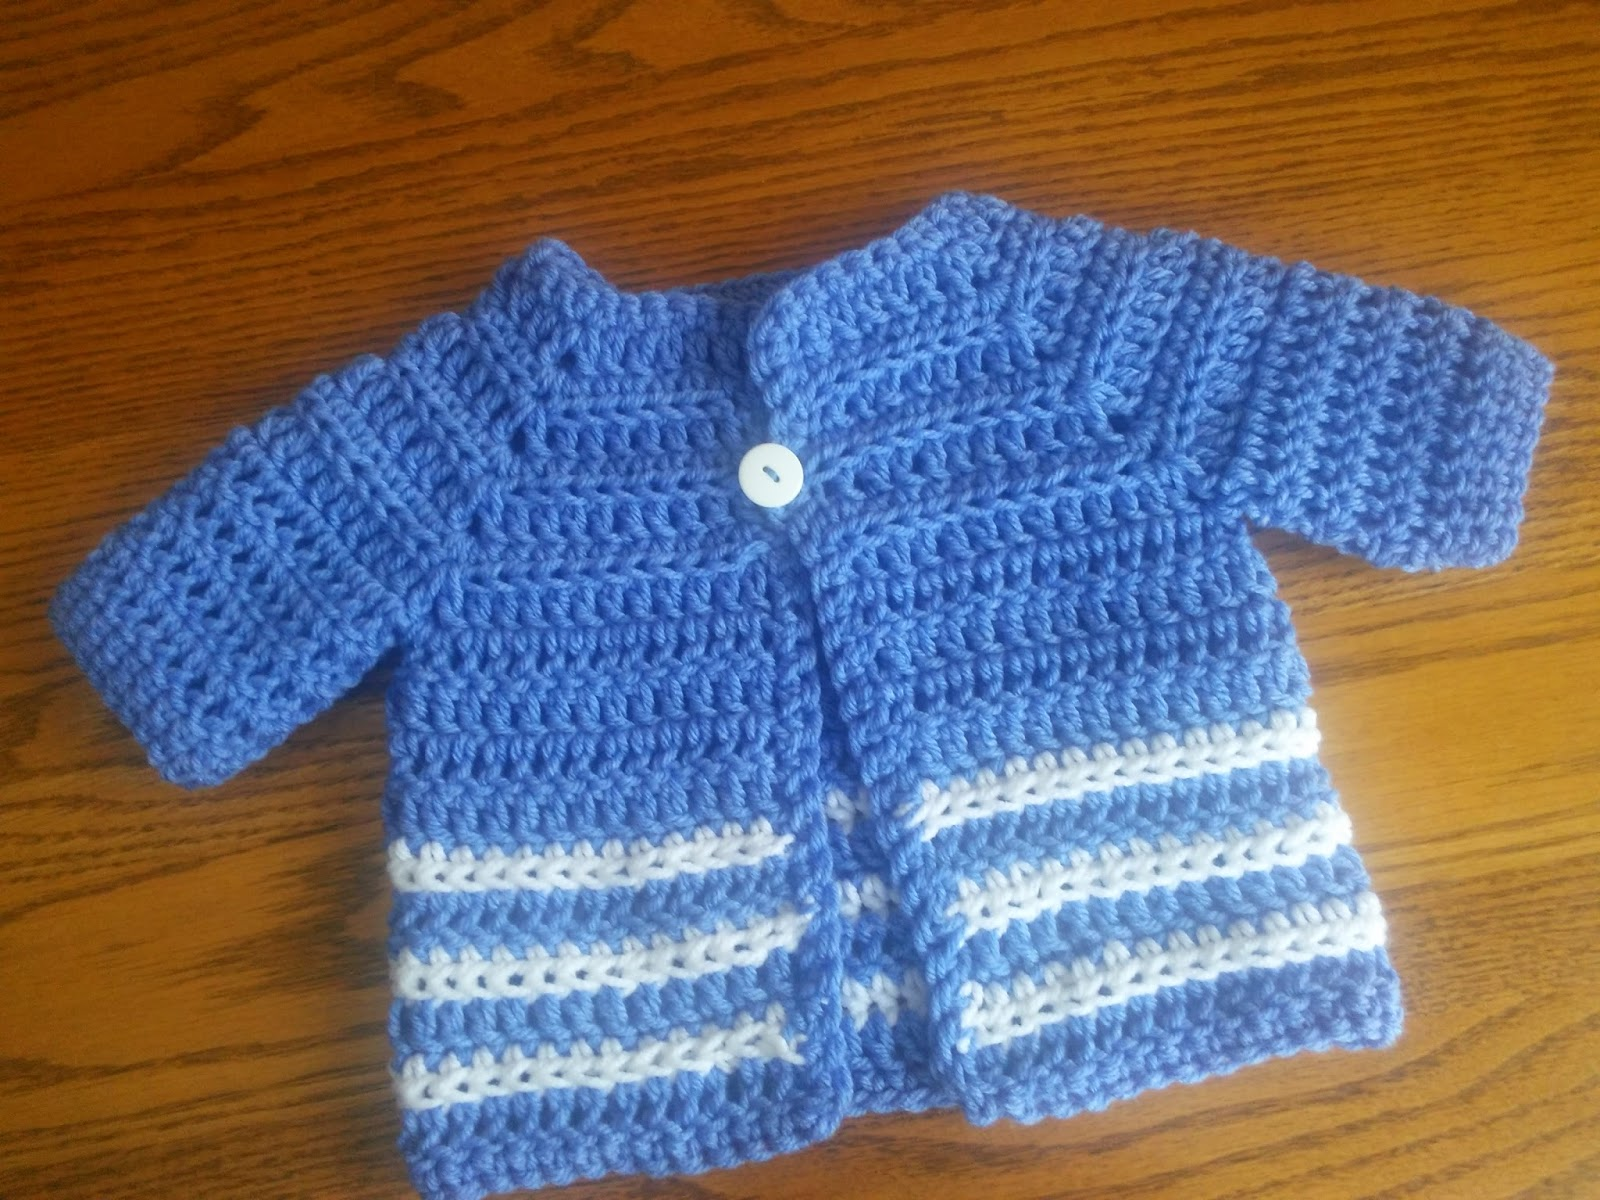 Crochet Baby Boy Hooded Sweater Pattern : Craft Brag: Baby Boy Crochet Sweater - Pattern